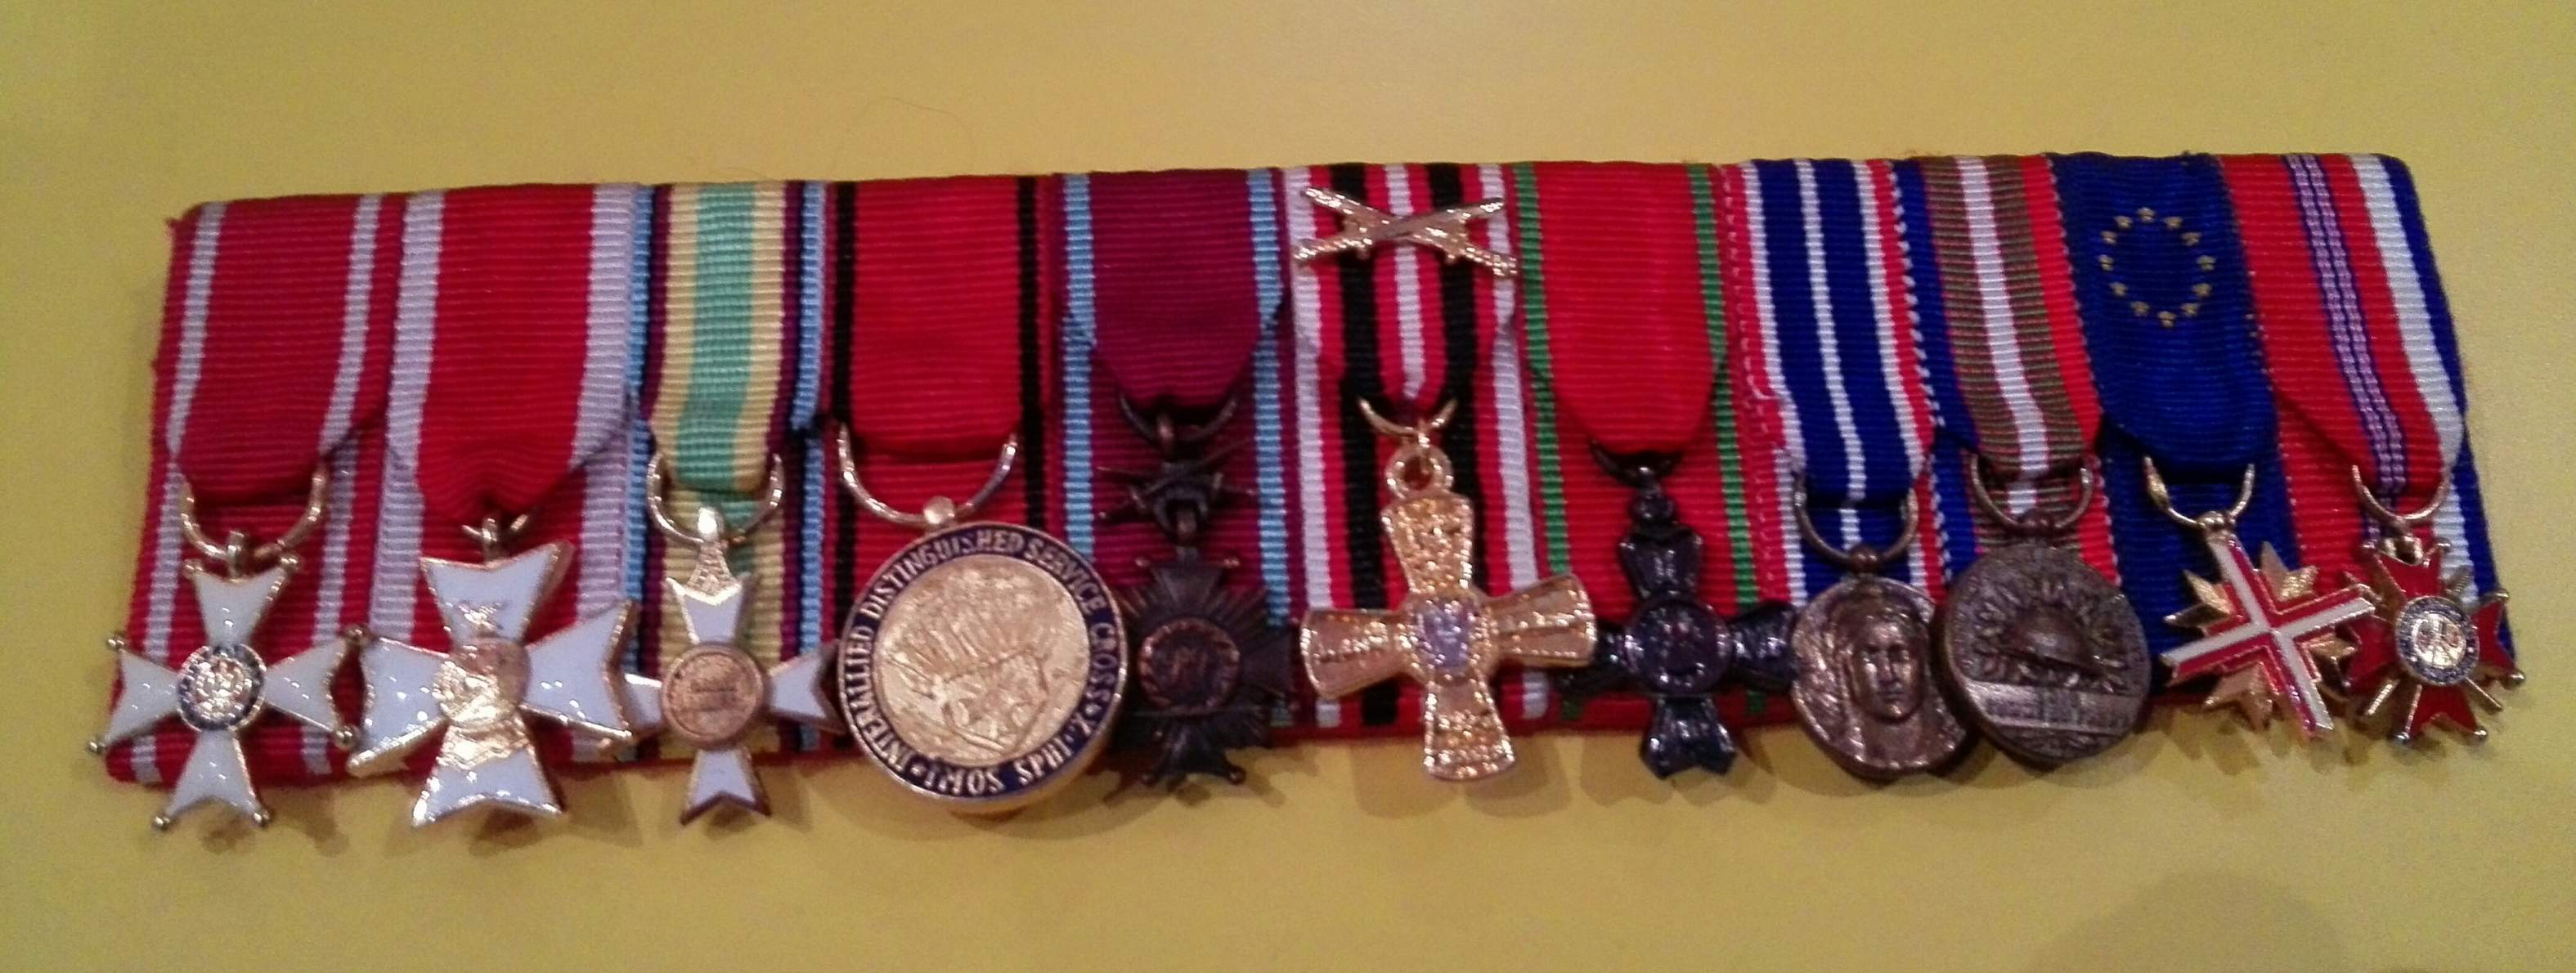 Question Mounted miniature medals group including Polonia Restituta